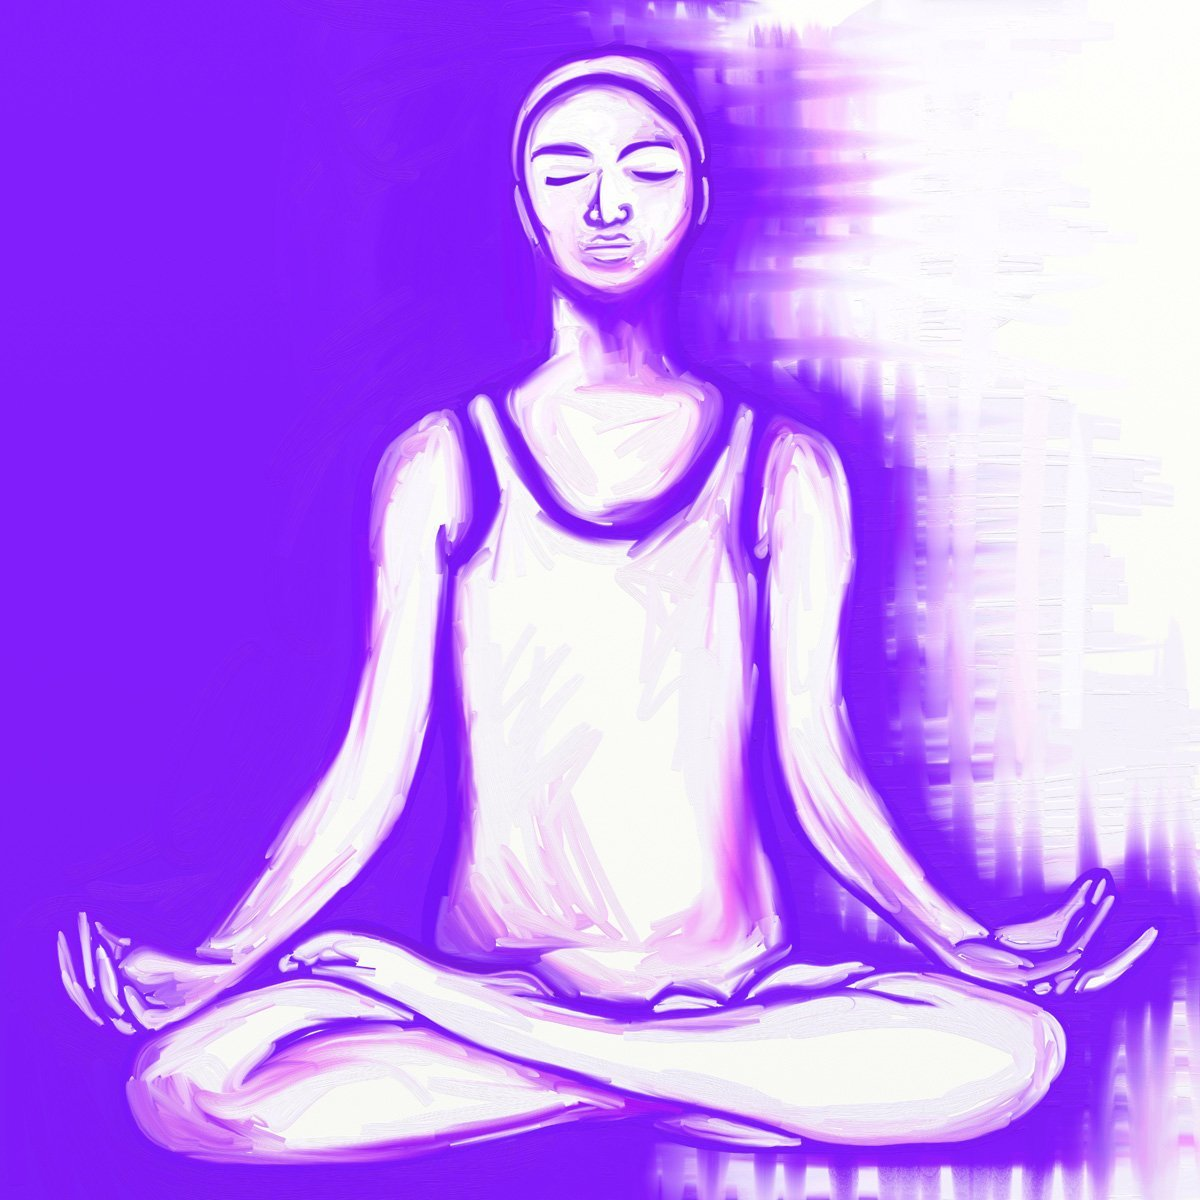 The image shows a piece of artwork by Jina Wallwork. It is a digital painting of a person meditating. Stylistically this piece of artwork has links with expressionism.